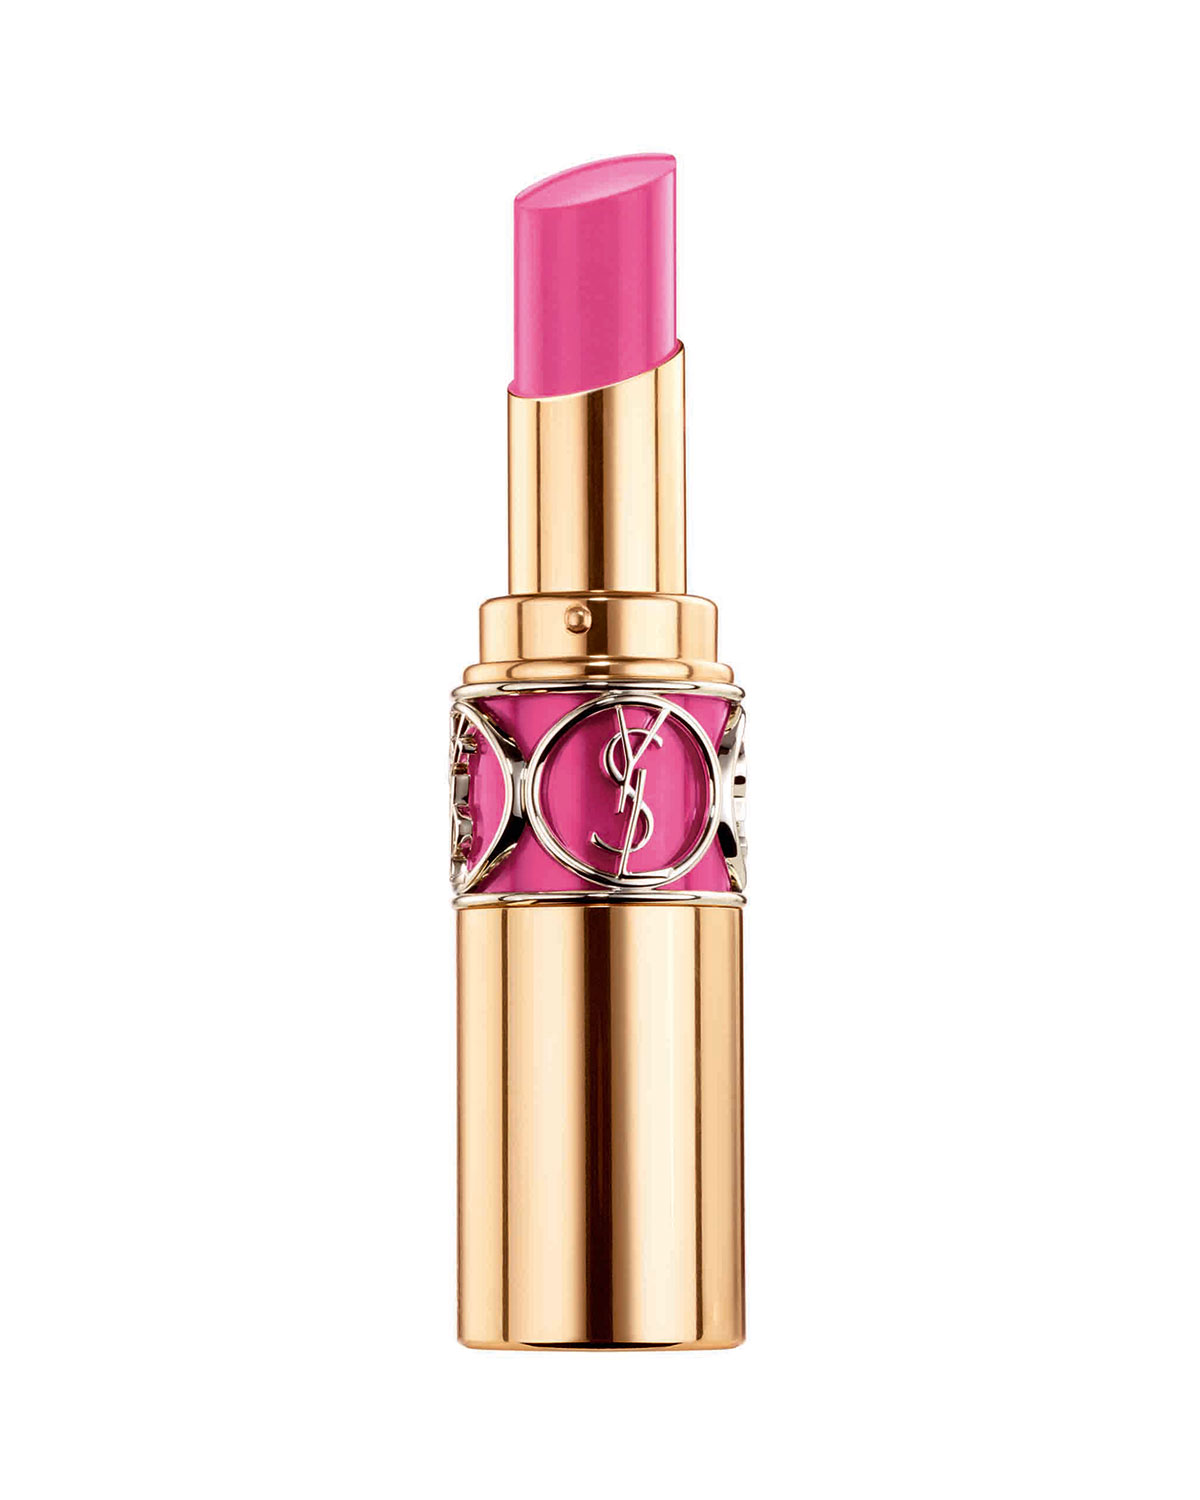 Rouge Volupte Shine Oil-In-Stick Lipstick, The Street And I Collection, Light Pink